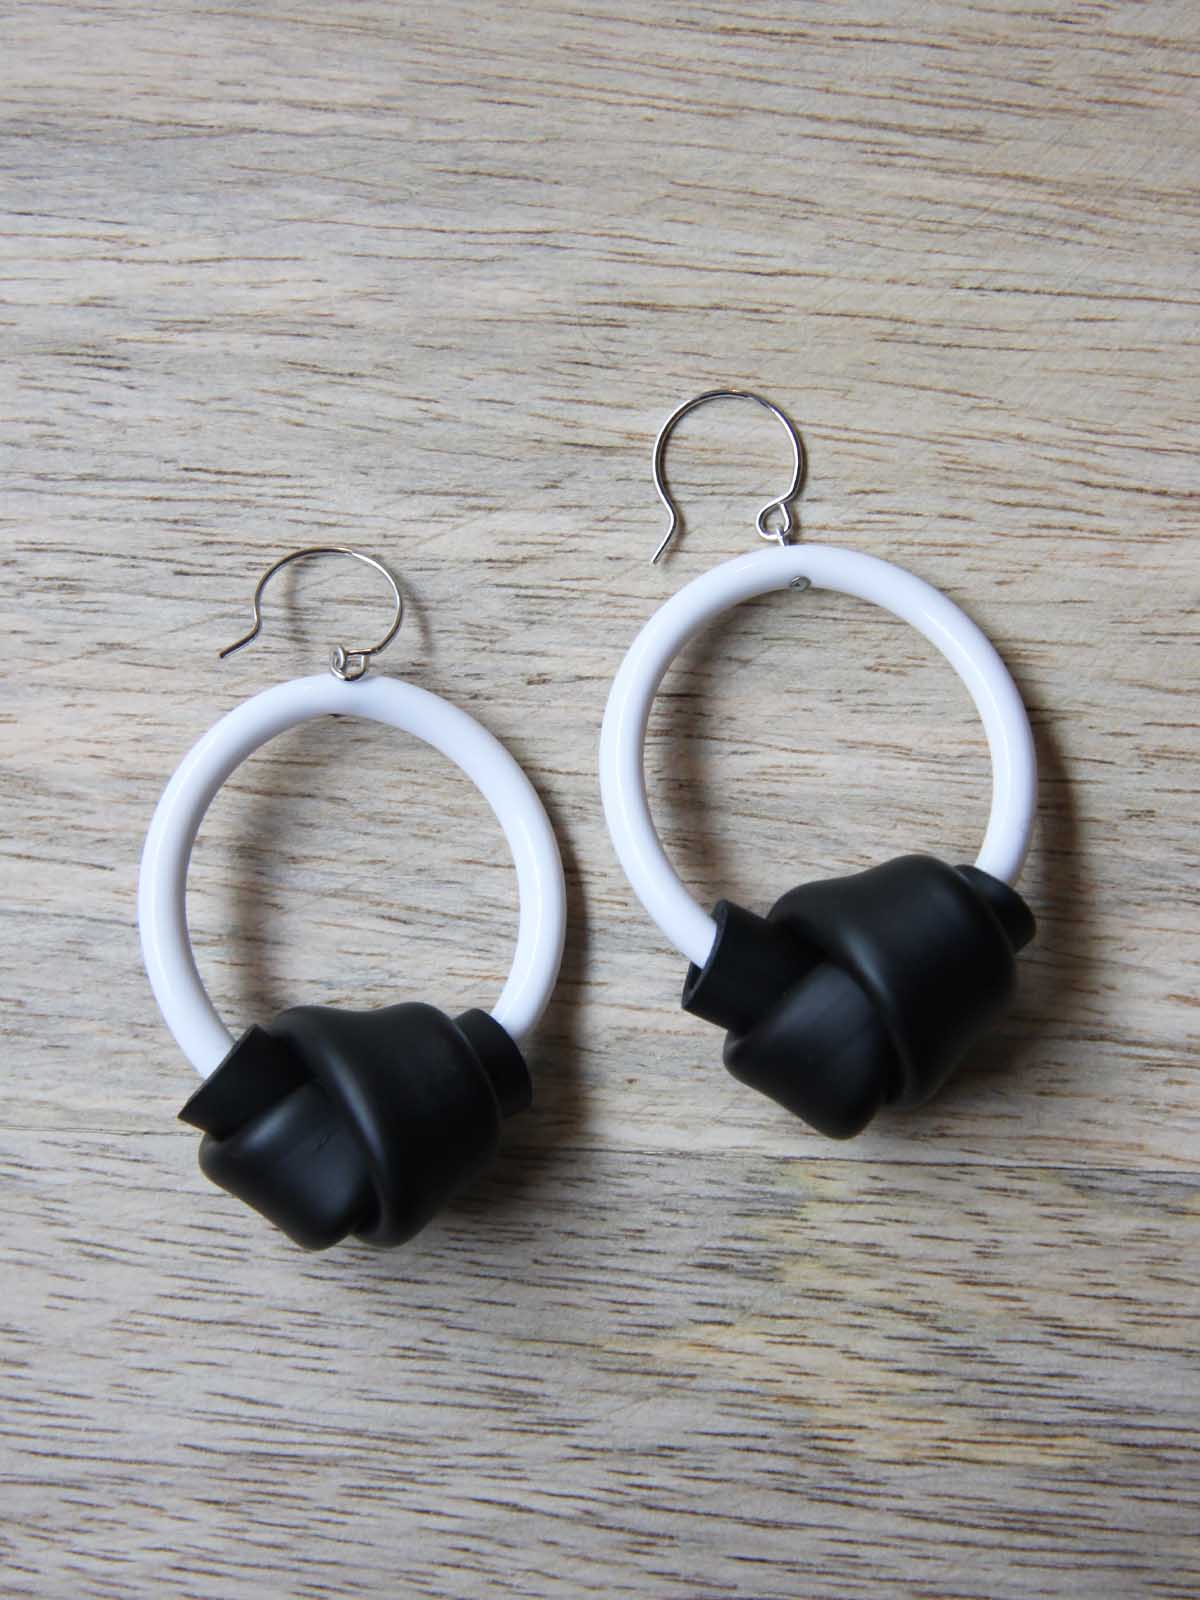 Samuel Coraux Hoops Earrings - Black and White, Accessories, Samuel Coraux, Blue Women - Blue Women's Clothing